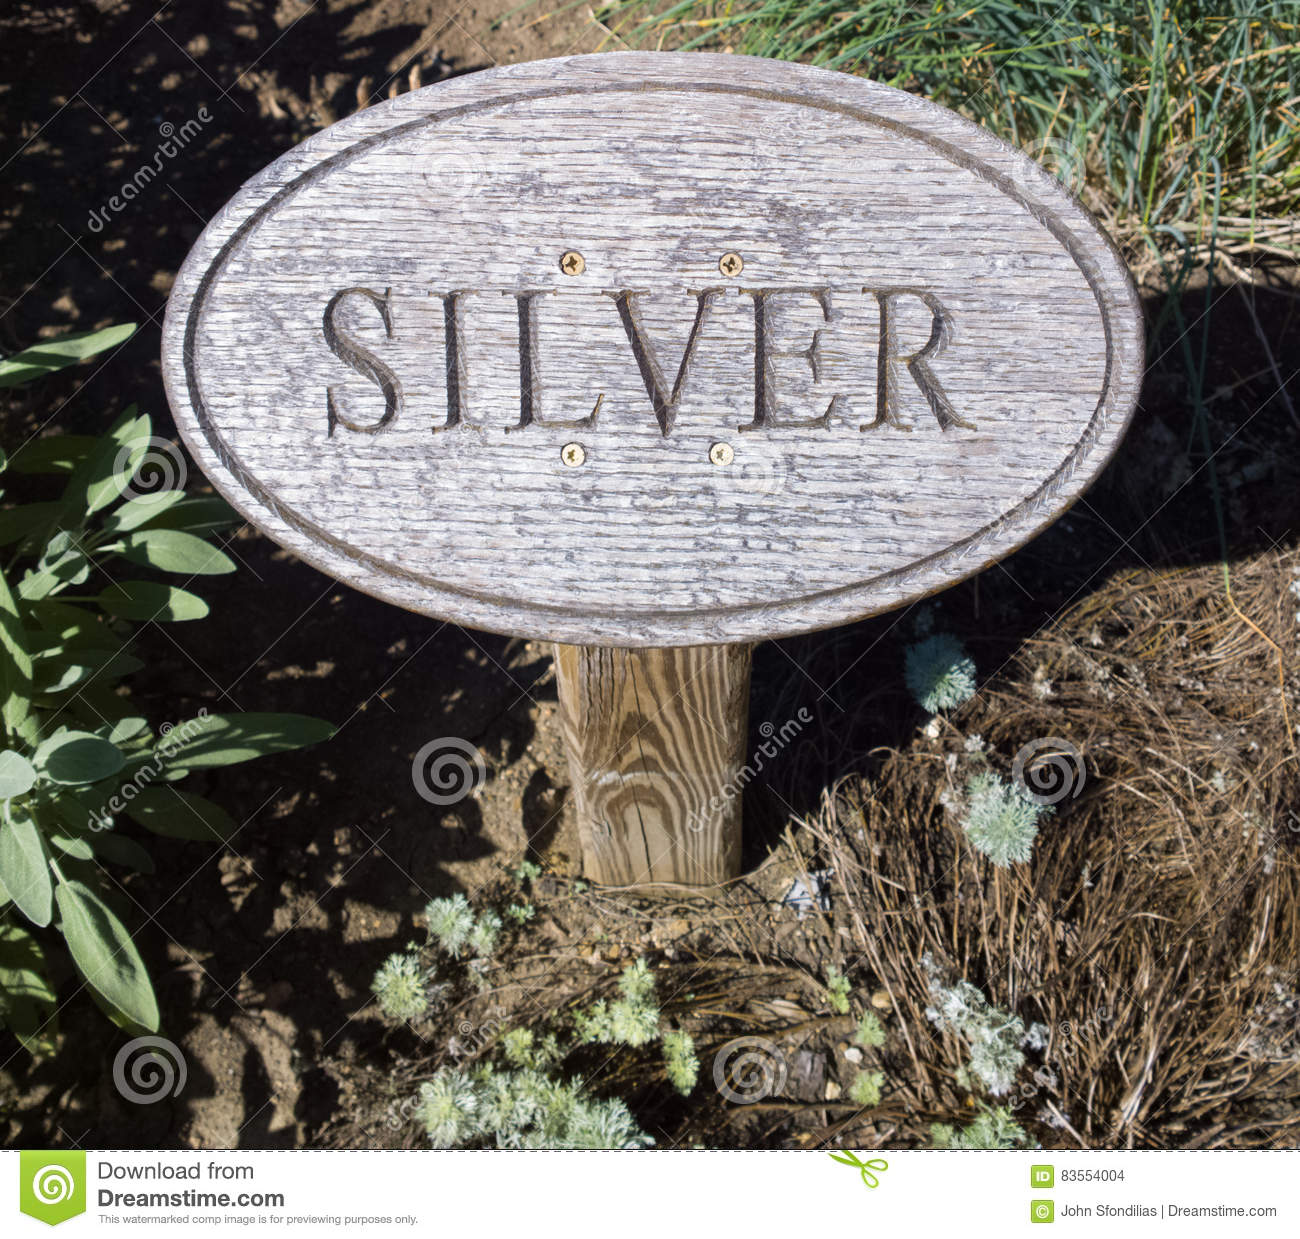 The Other Silver